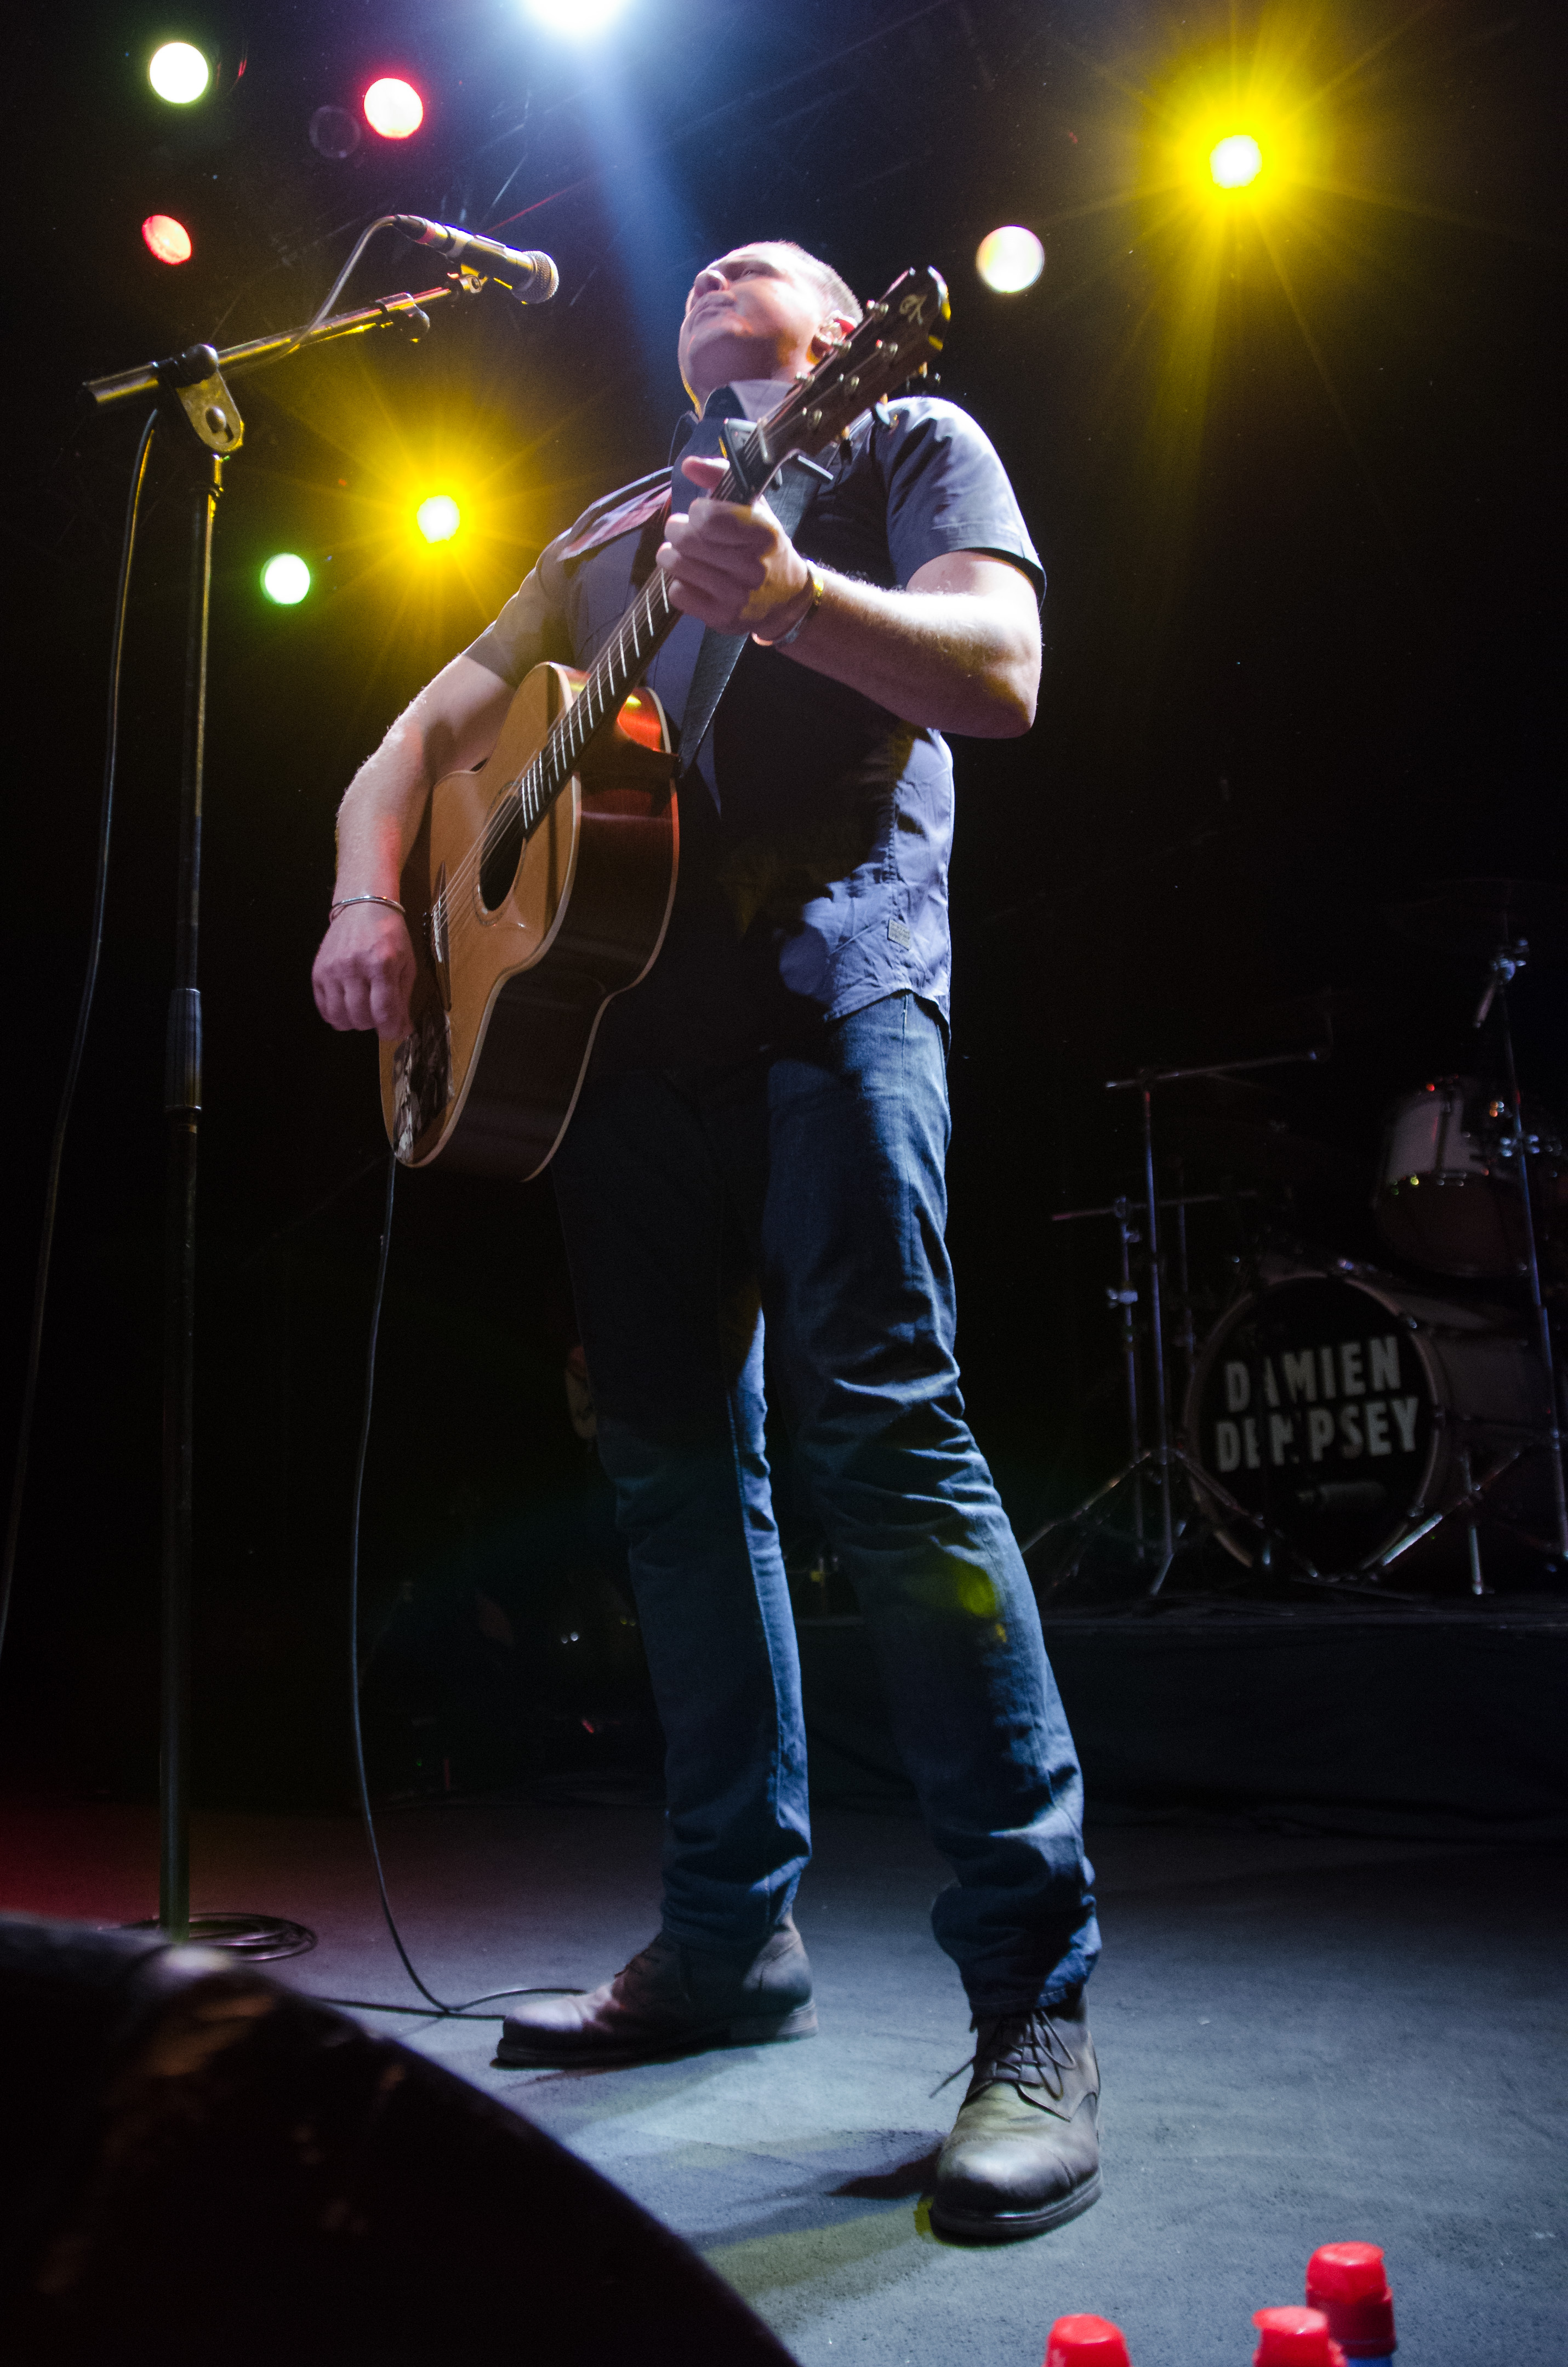 damien-dempsey-at-vicar-street-by-sean-smyth-19-12-15-23-of-34